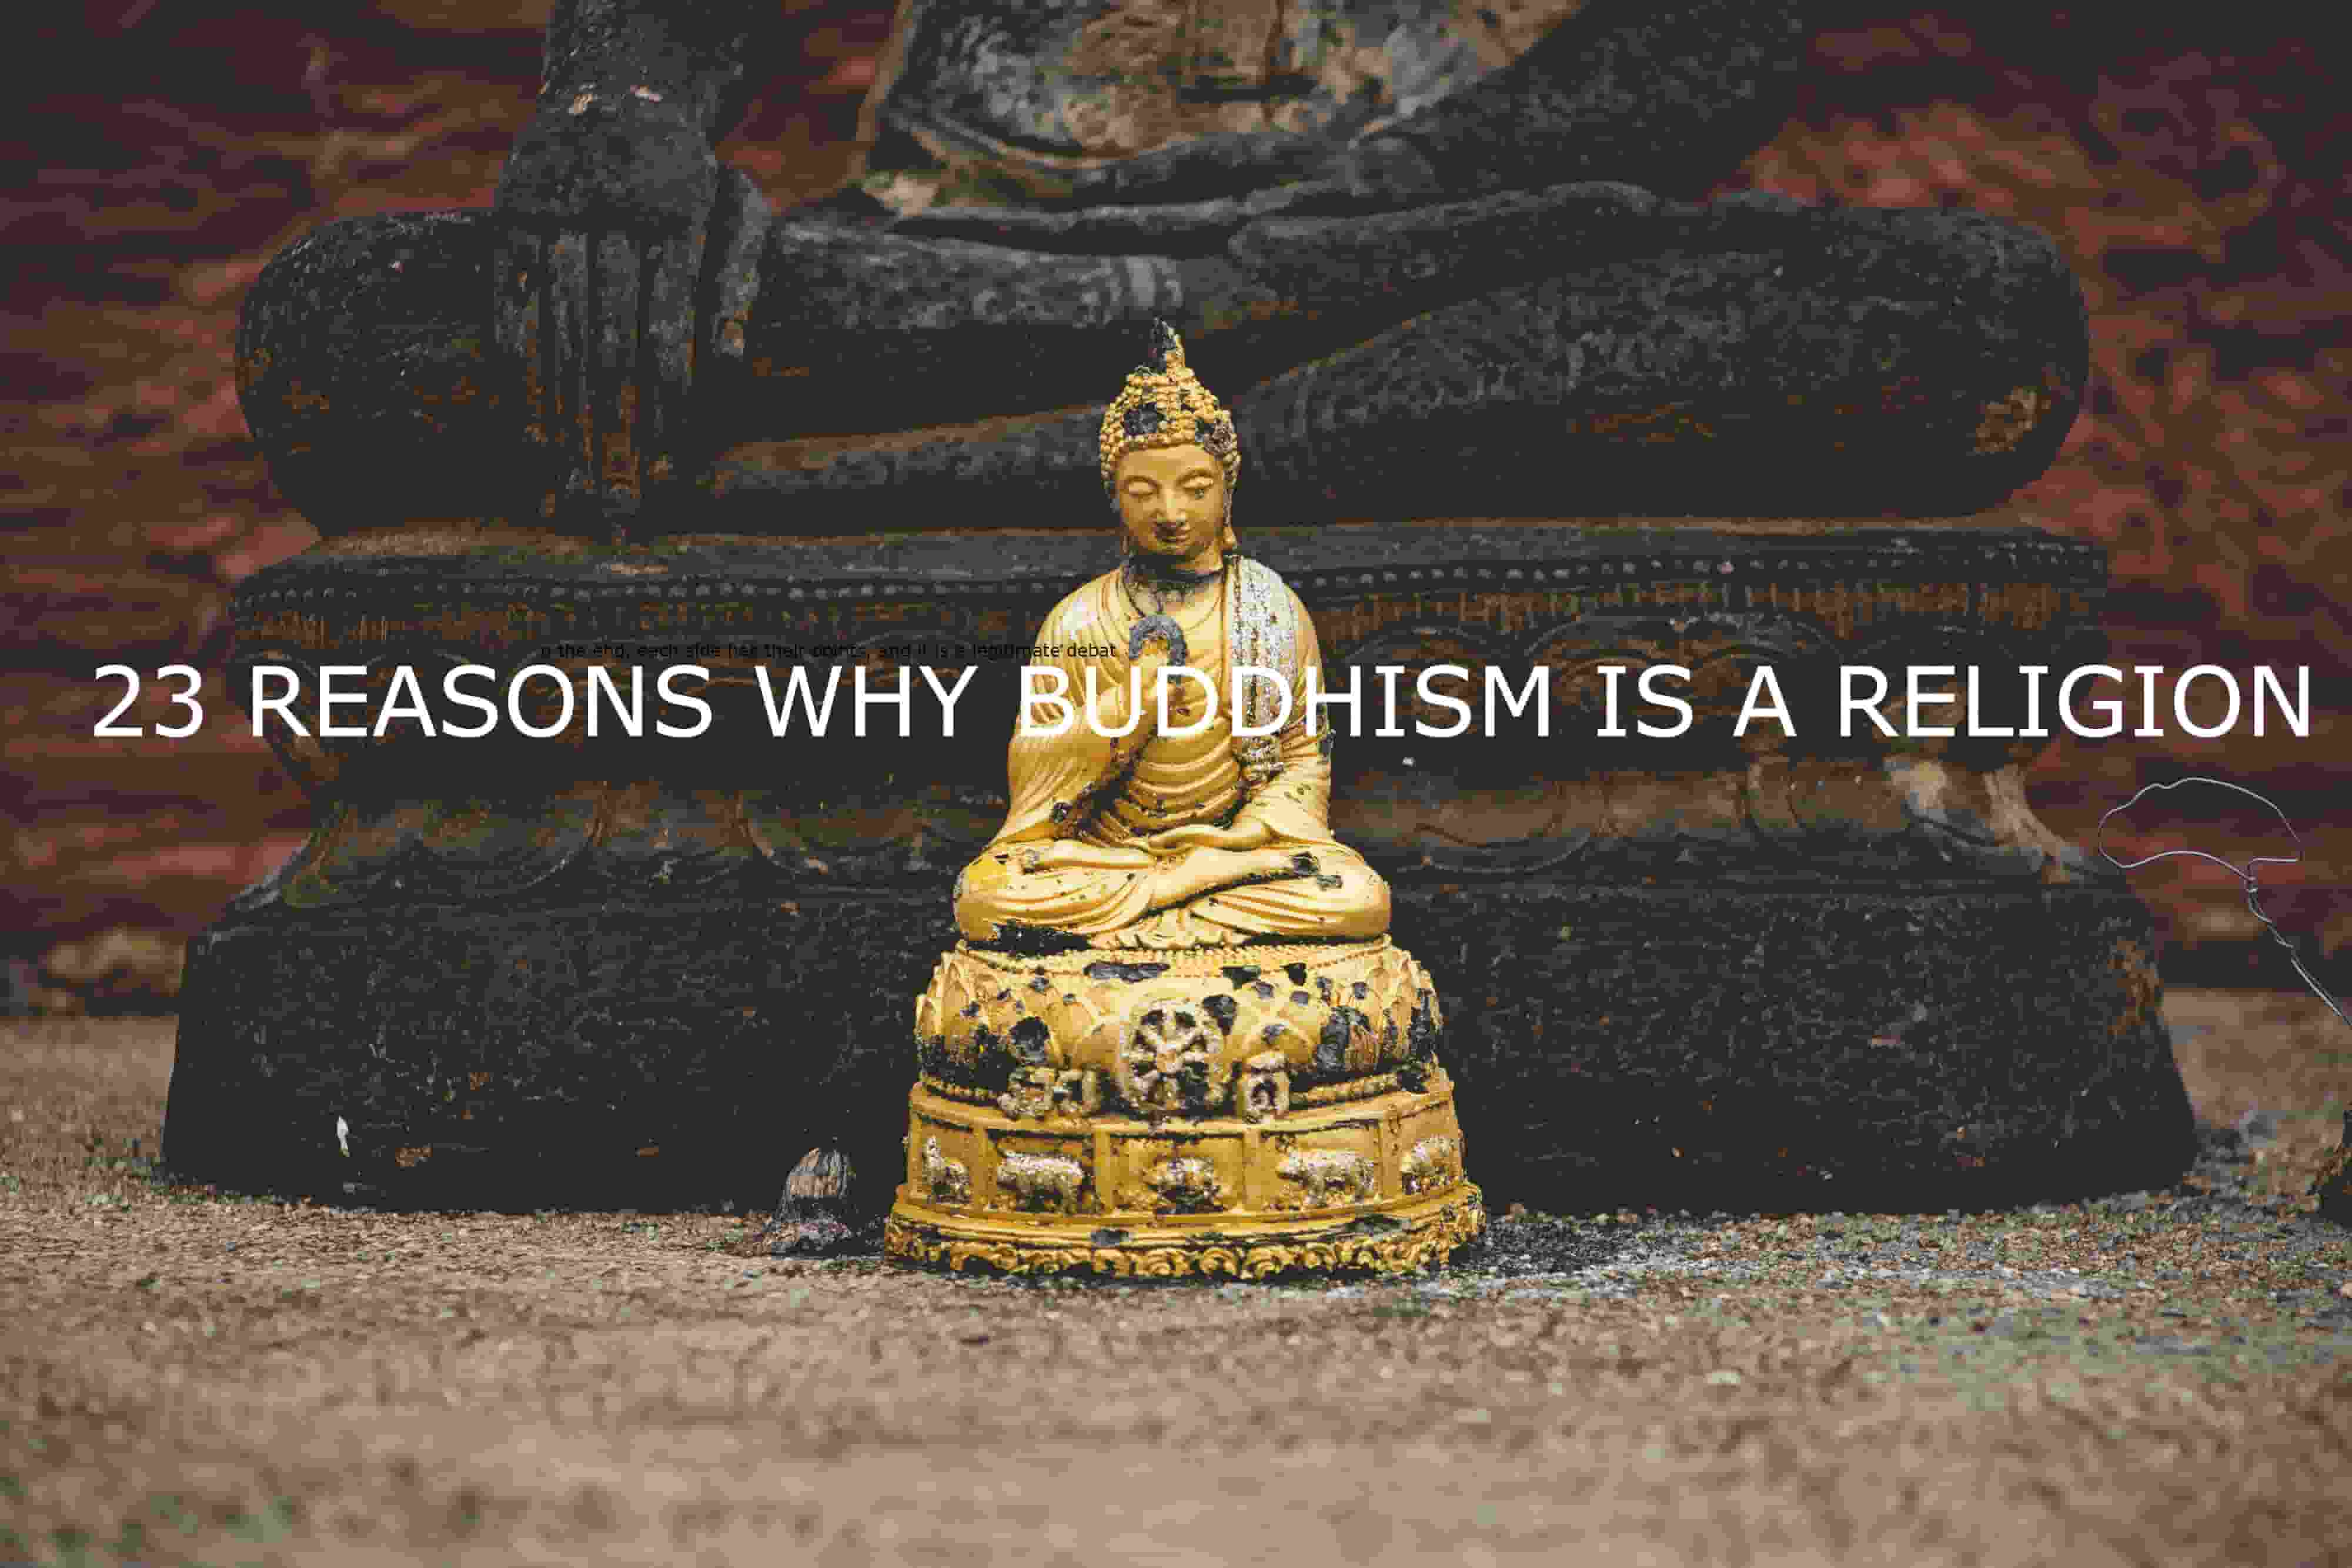 23 REASONS WHY BUDDHISM IS A RELIGION